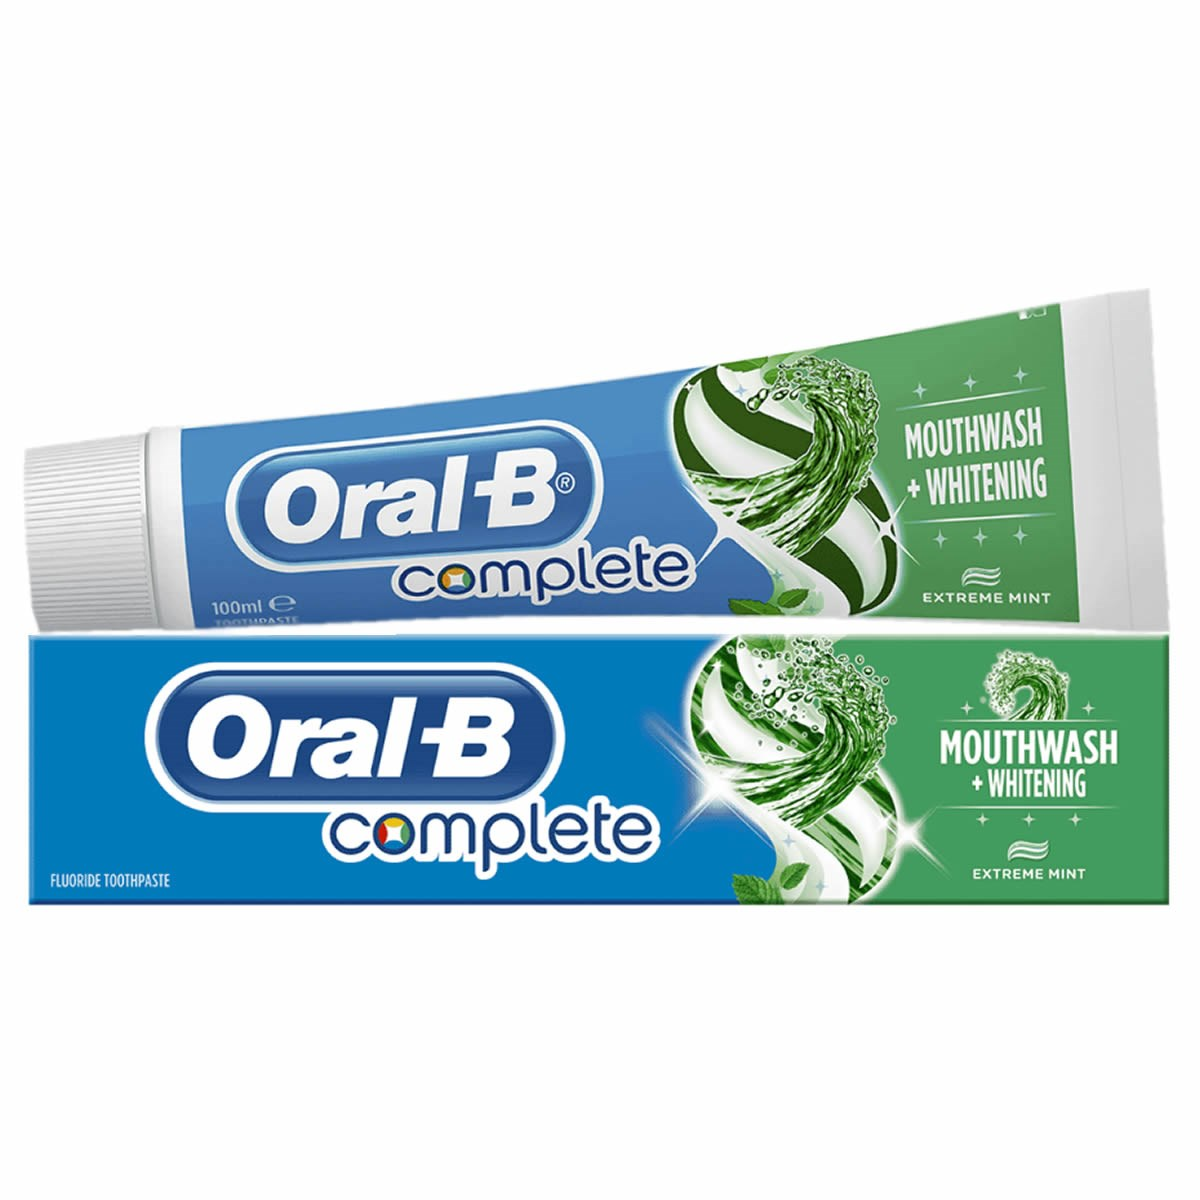 Oral-B Complete Mouthwash + Whitening Toothpaste